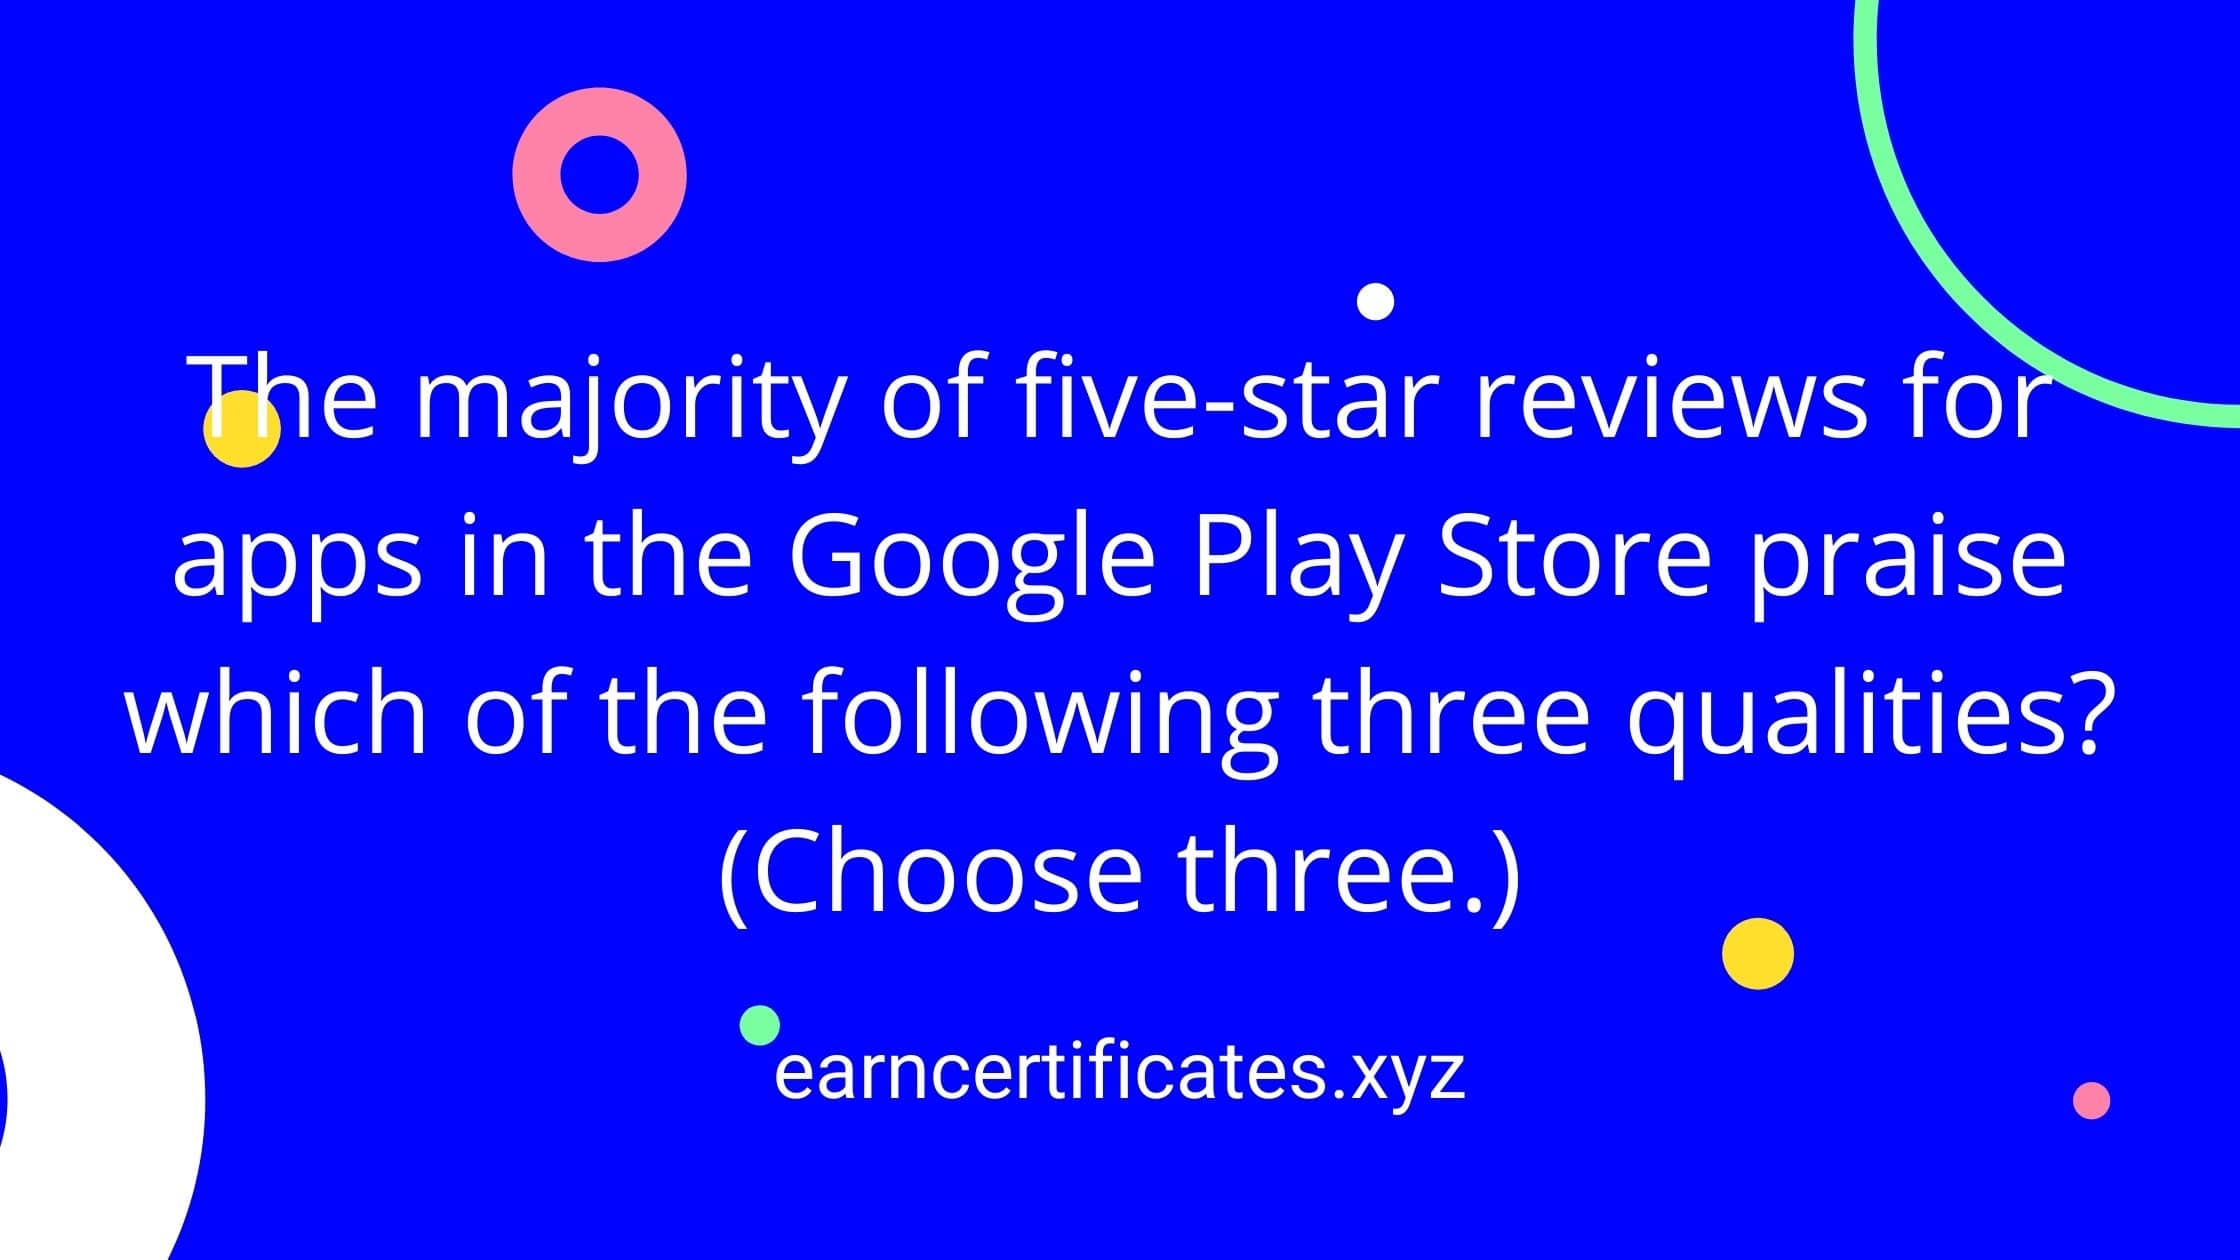 The majority of five-star reviews for apps in the Google Play Store praise which of the following three qualities? (Choose three.)